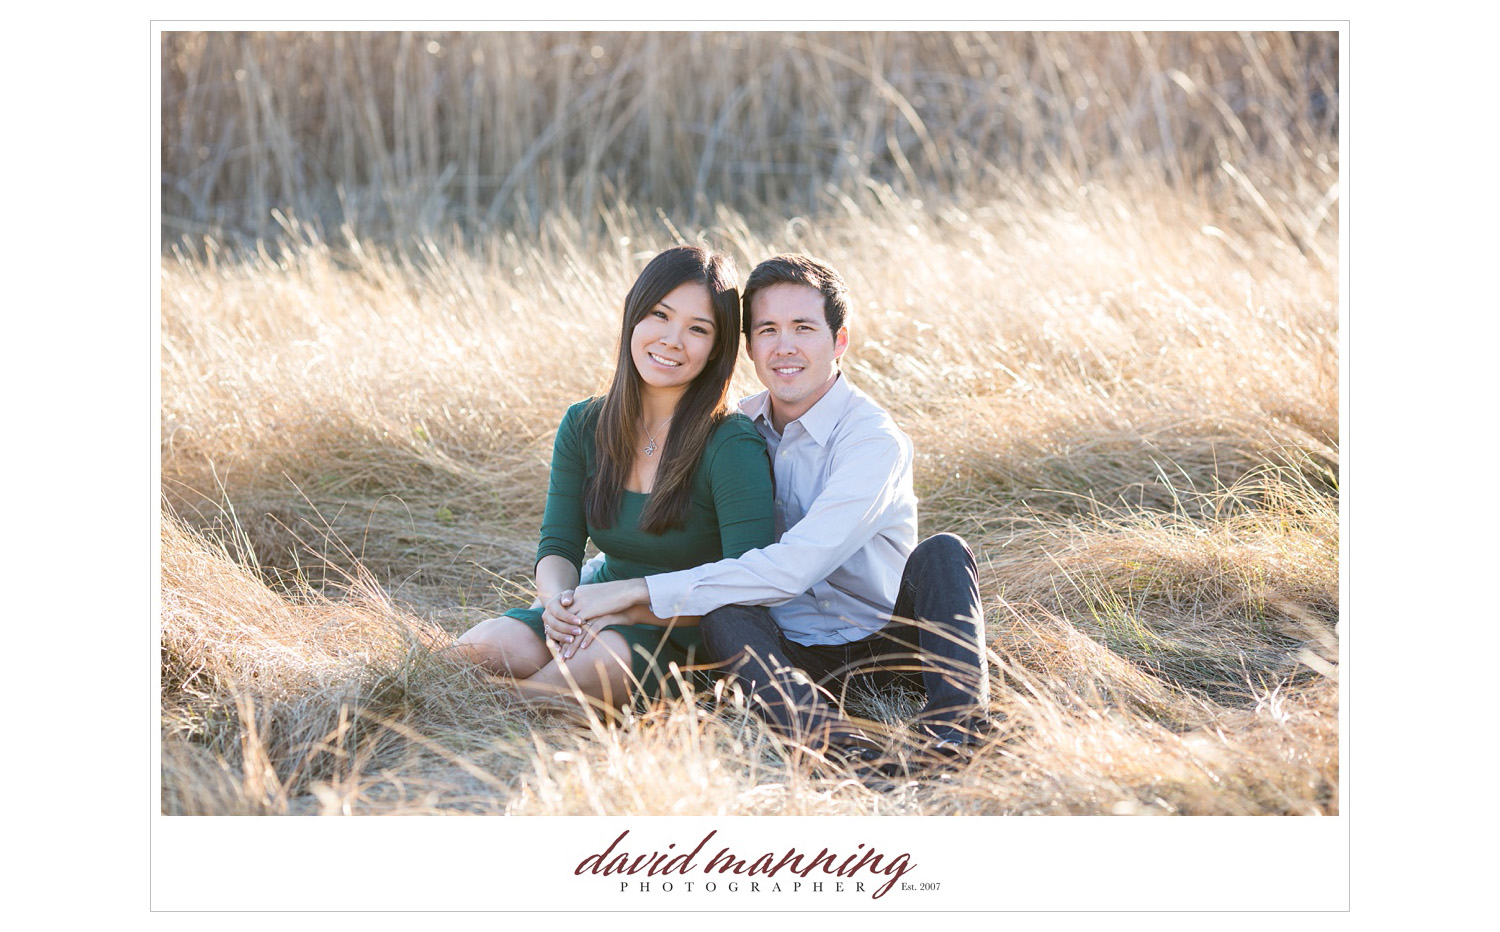 Del-Mar-Ramona-Julian-Engagement-Photos-David-Manning-Photographers-0005.jpg